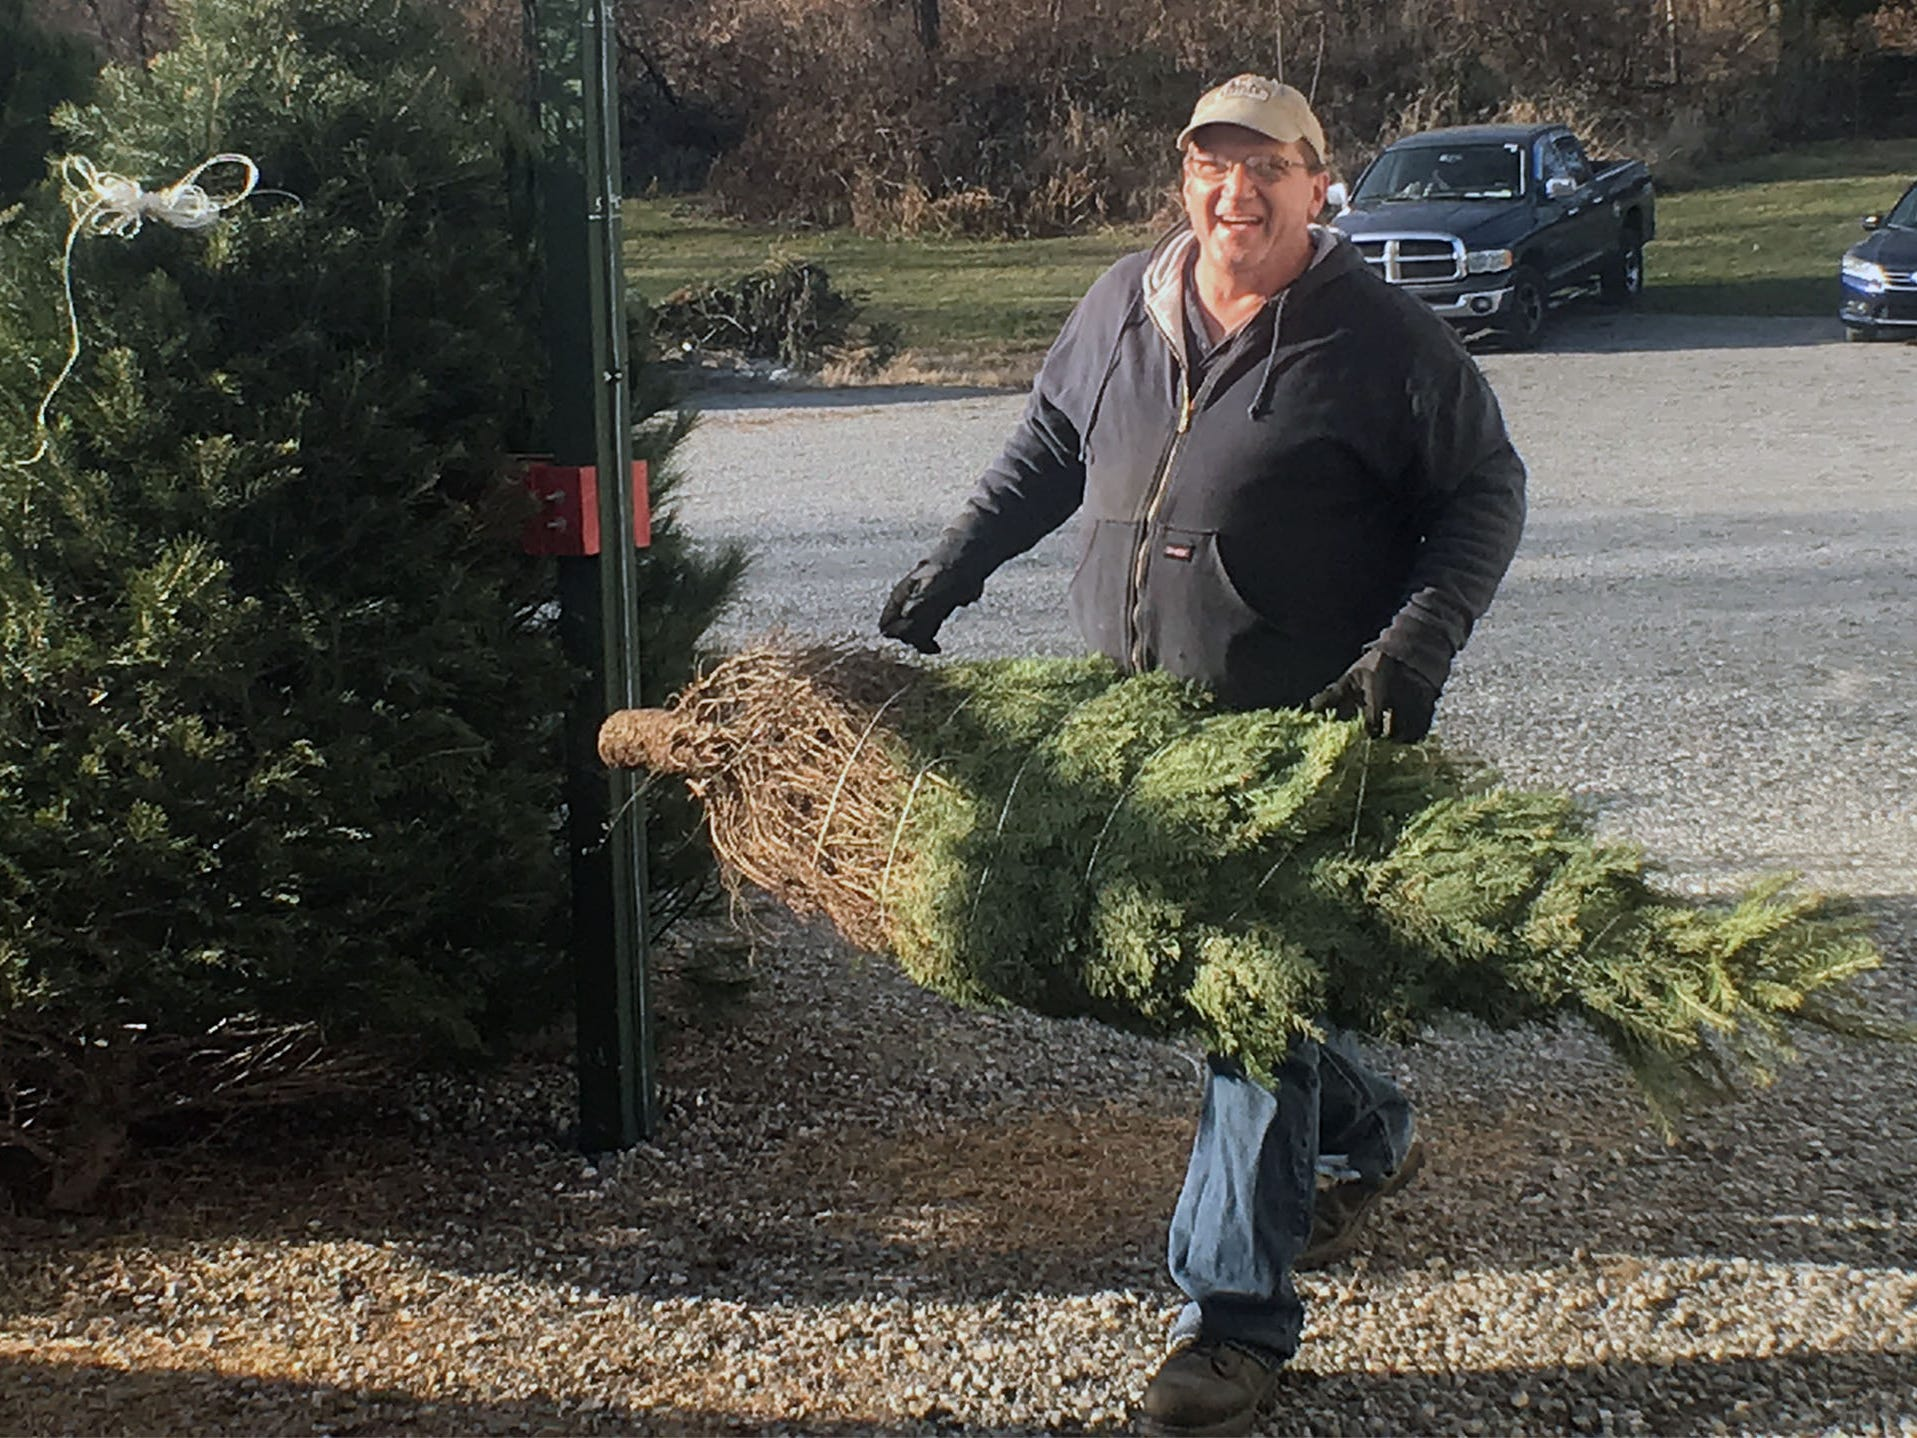 Richard Lynch Jr. carries a Christmas tree for customers on Friday, November 23, 2018 at Pine View Haven Christmas Trees in St. Thomas.